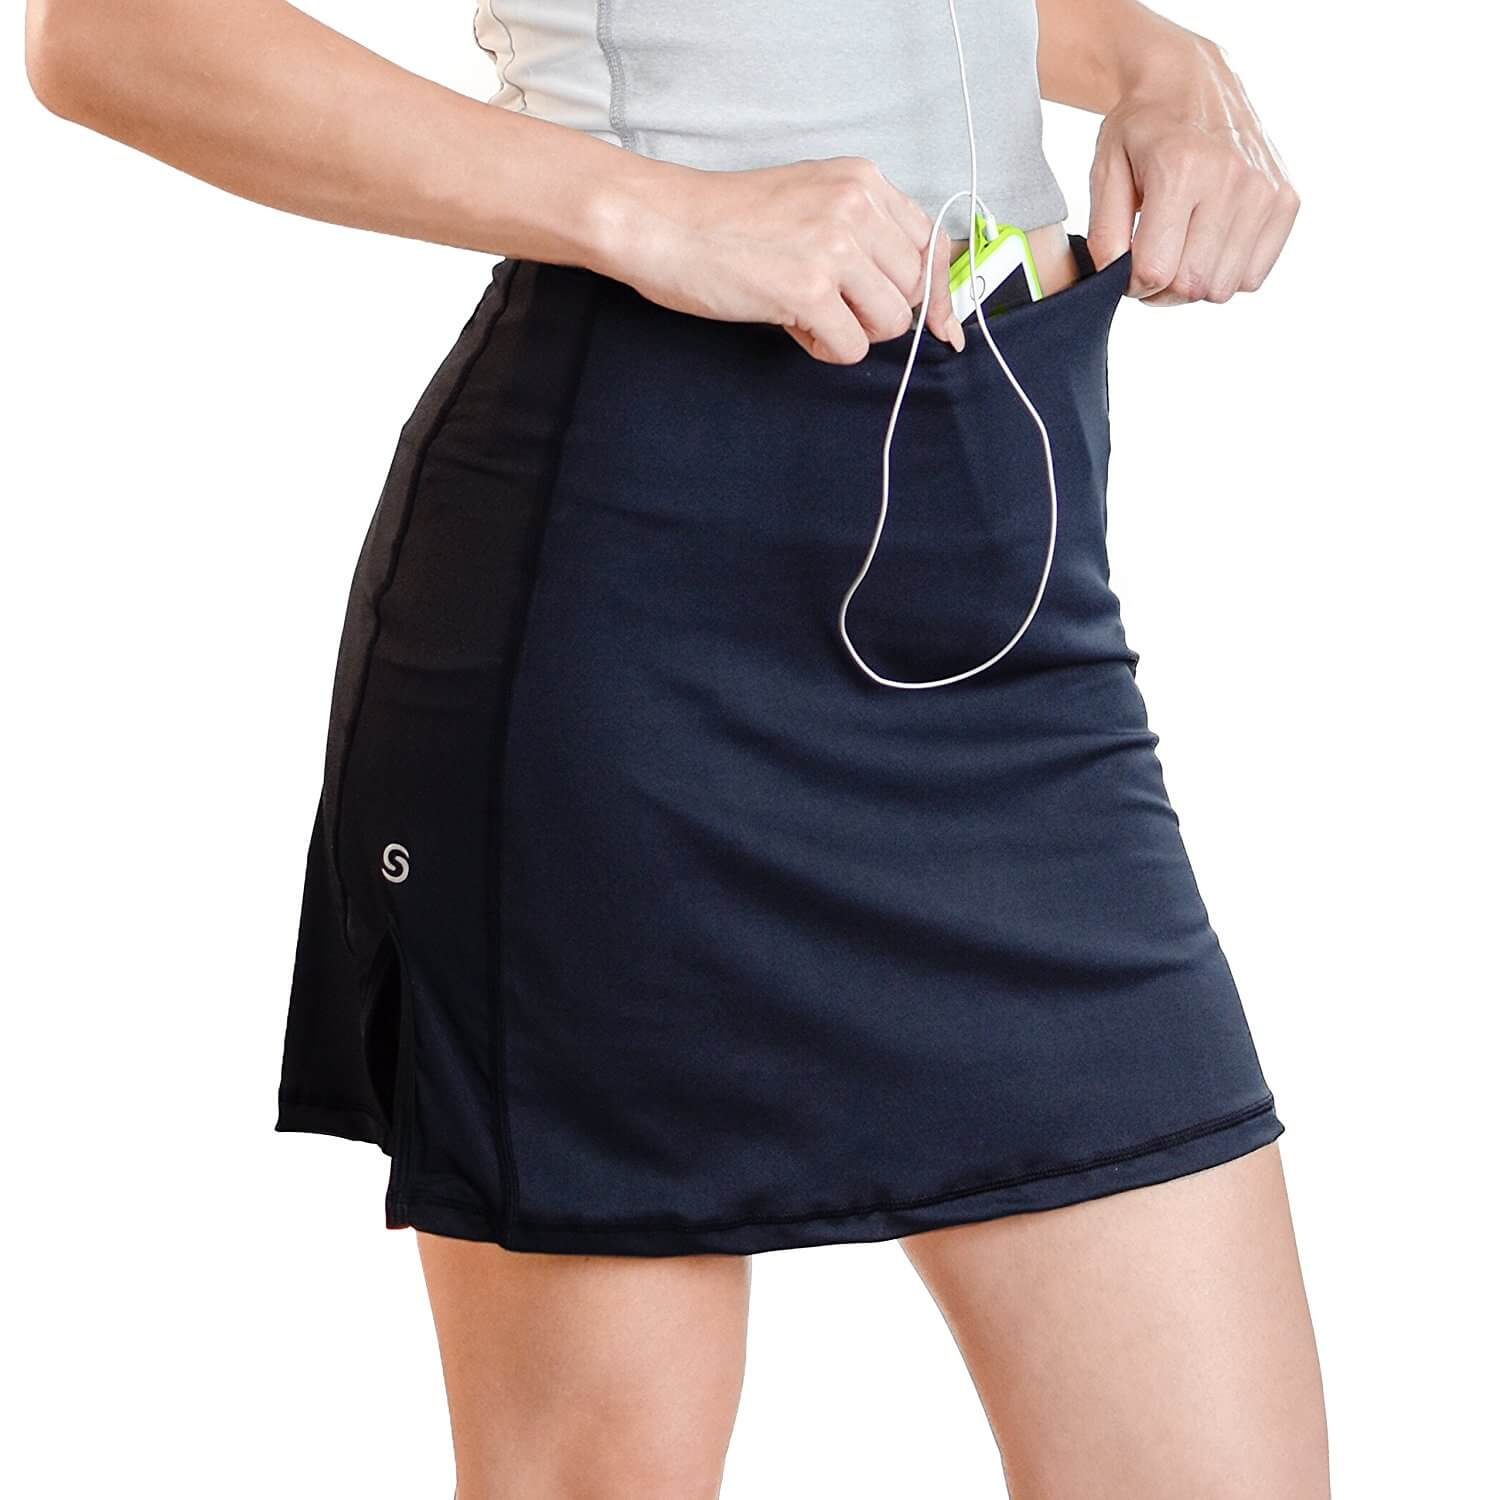 Go Sport-it: SPORT SKIRT with Built-in Shorts, Pockets, Tummy Control